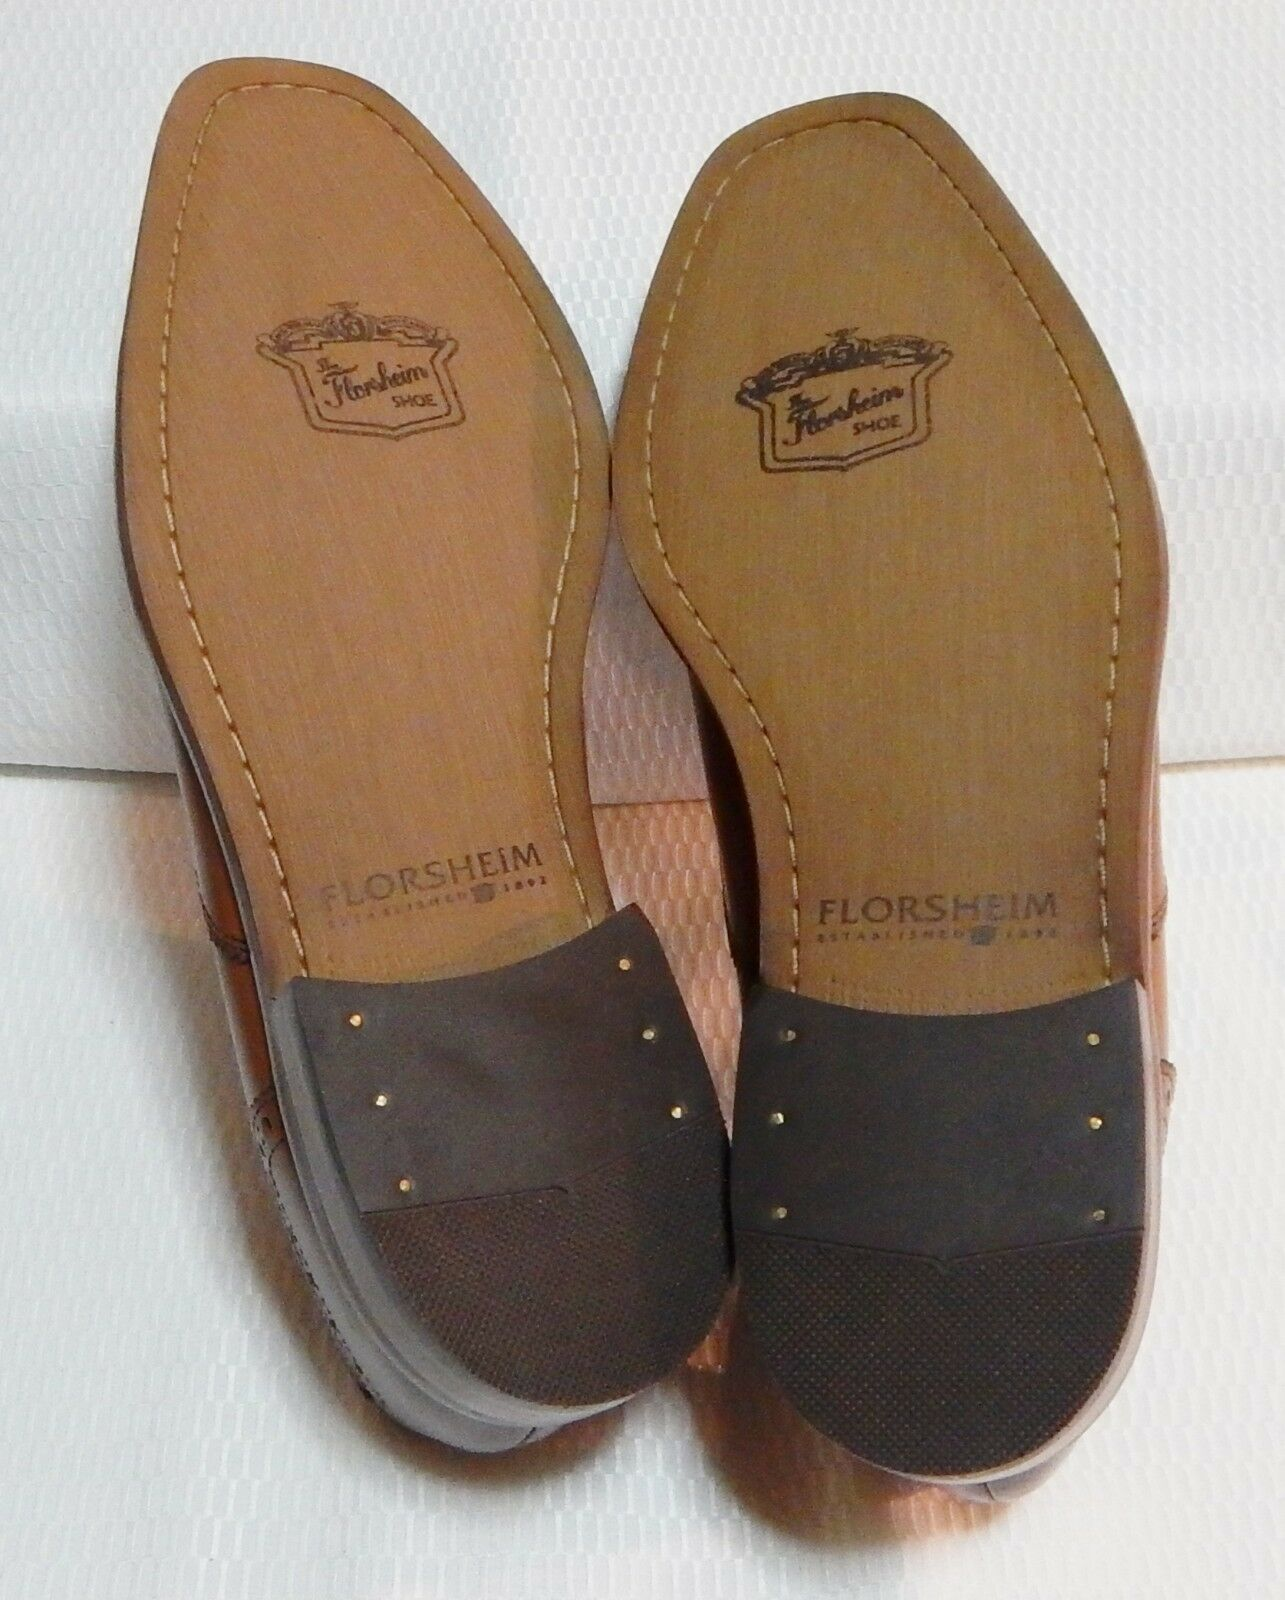 FLORSHEIM CASTELLANO MOC TOE SZ CASUAL SLIP-ON LOAFER MEN'Schuhe(Tan) SZ TOE 11.5#2210-1 235b3a